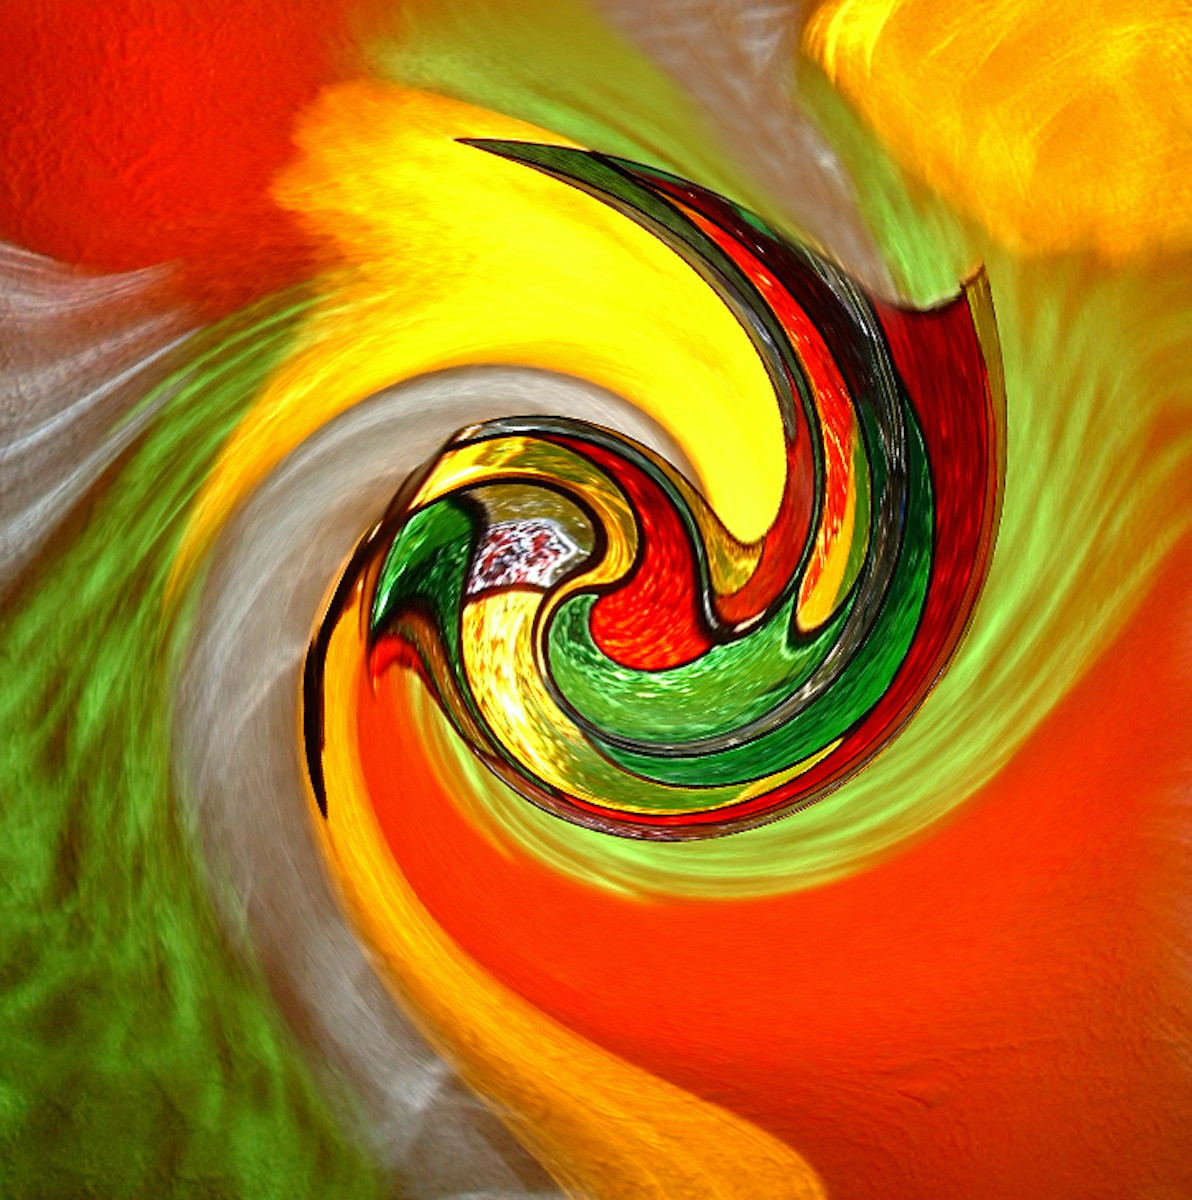 'Stained Glass Skew' by Paul Miller (9 marks)